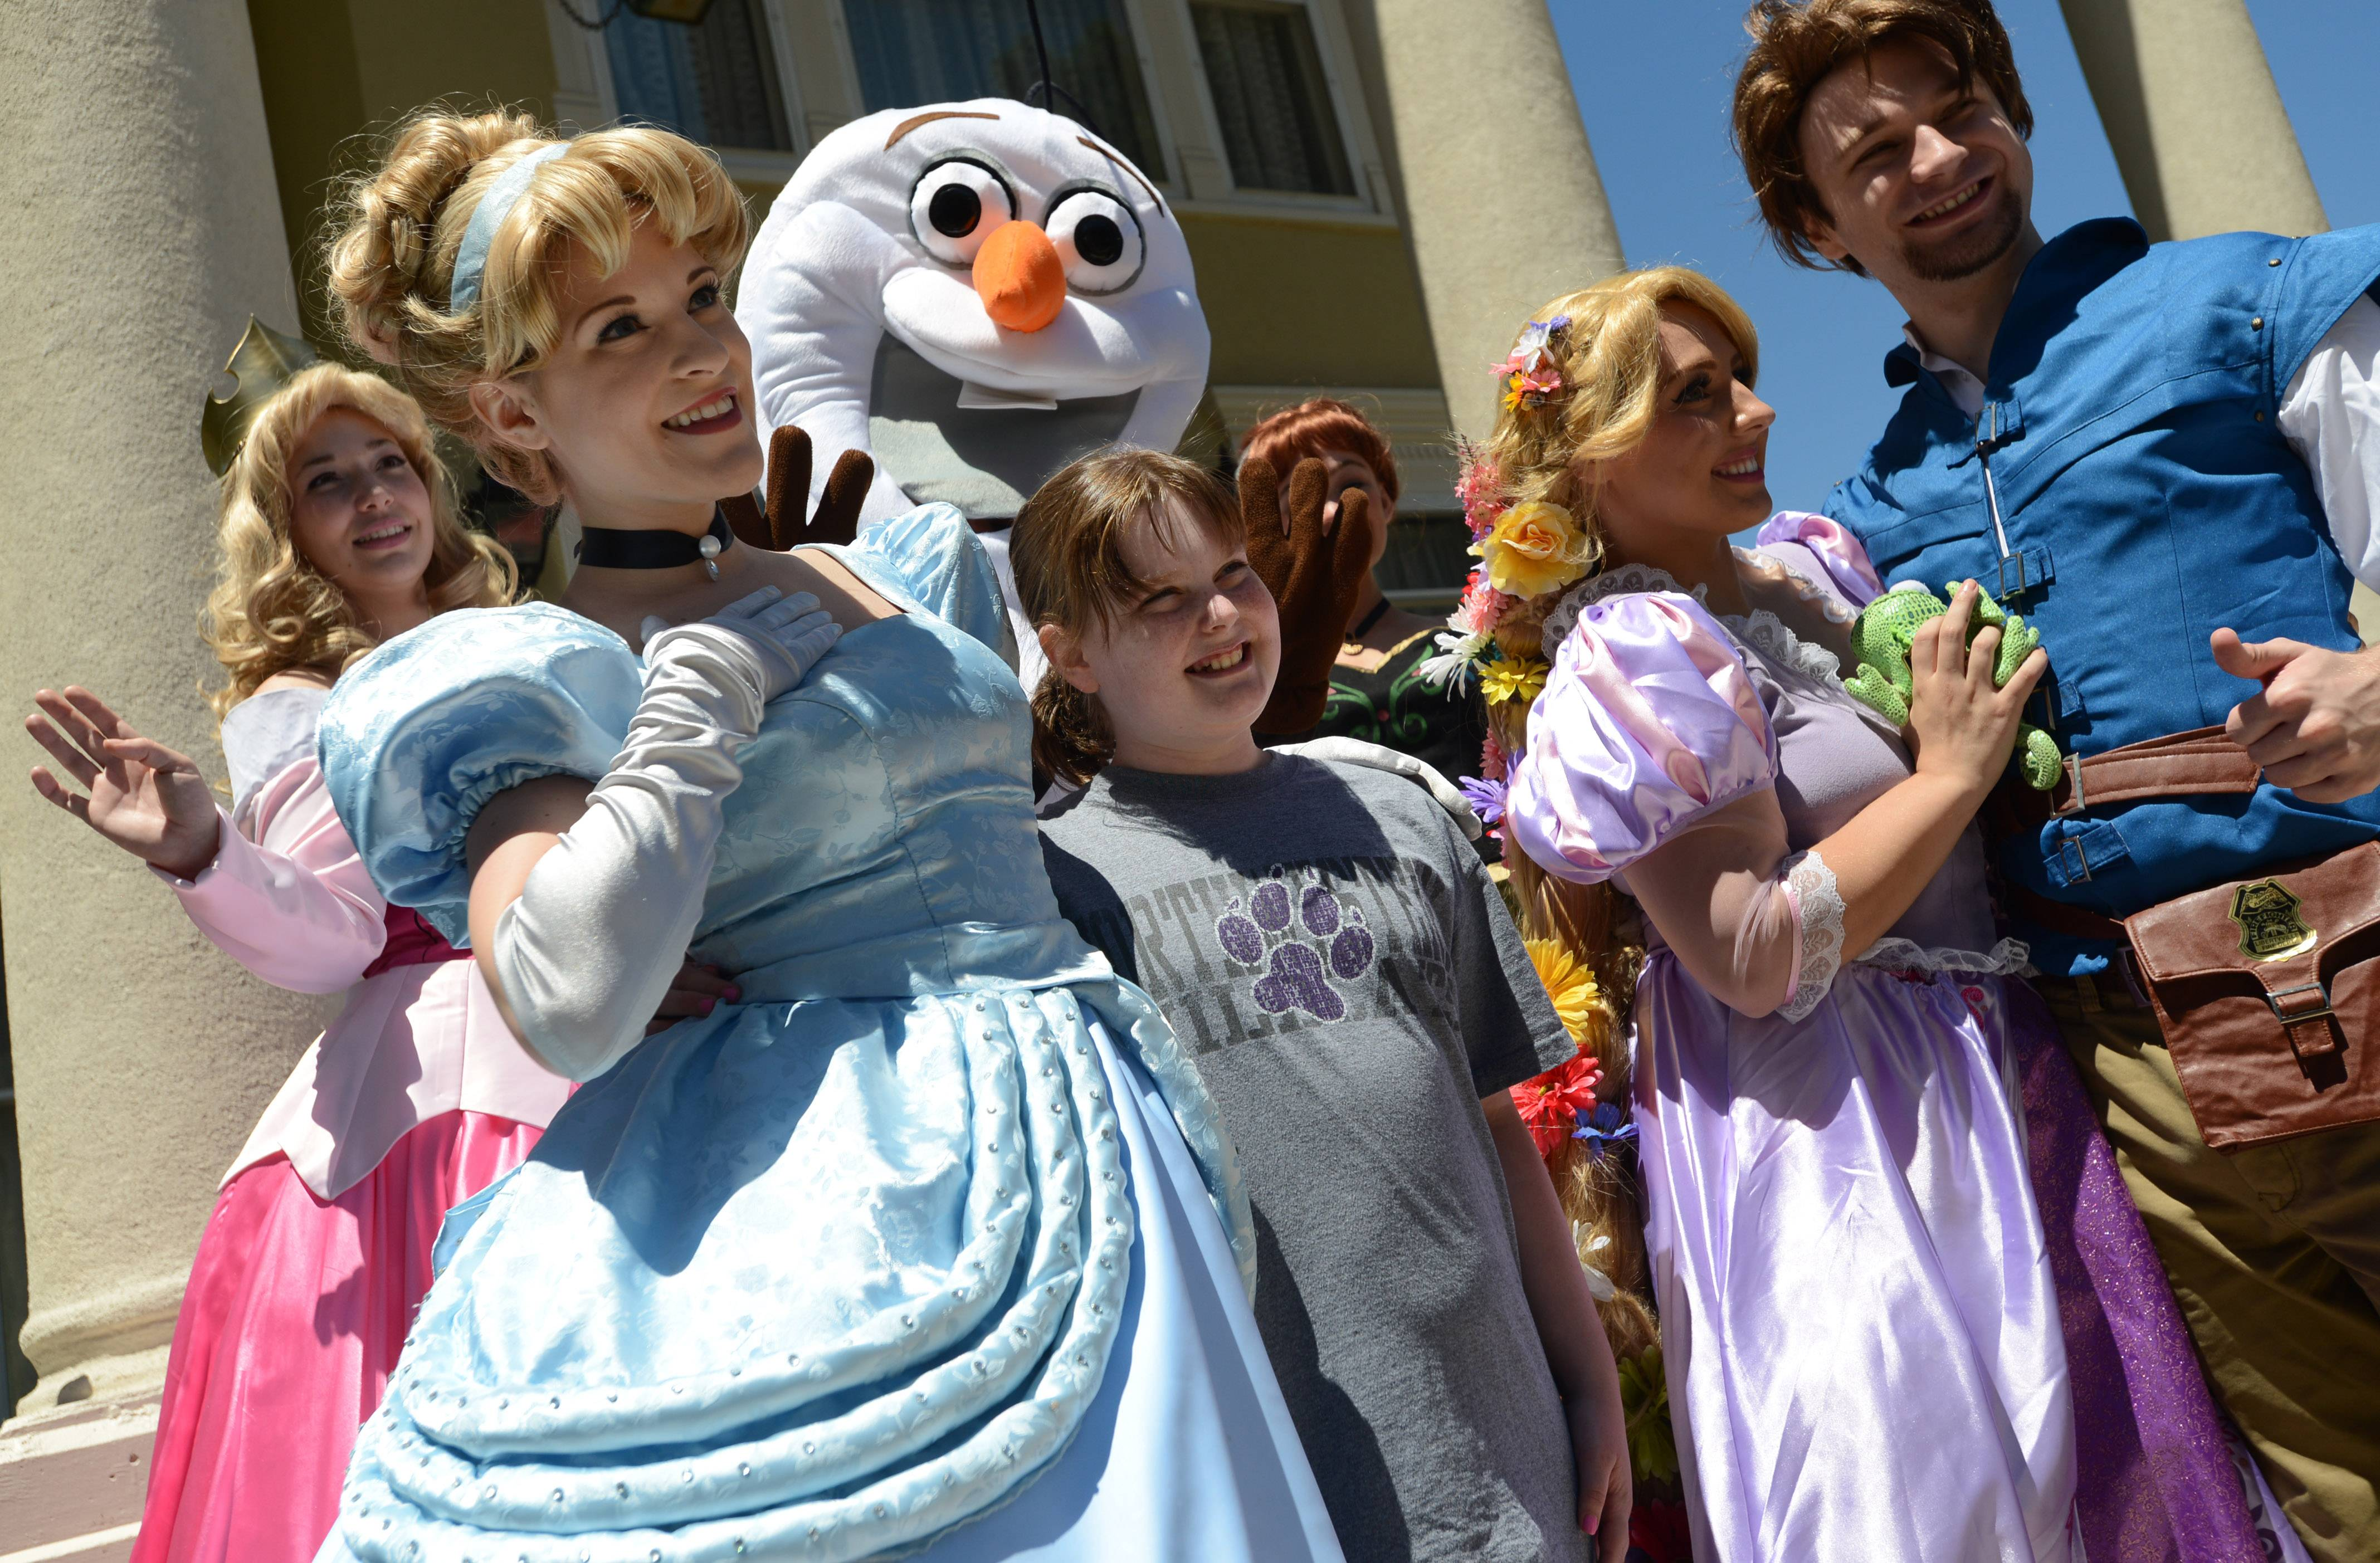 Julia Fryrear, 12, of Libertyville celebrates her birthday at Libertyville Days on Friday, posing for a photo with Premier Princess Parties characters.